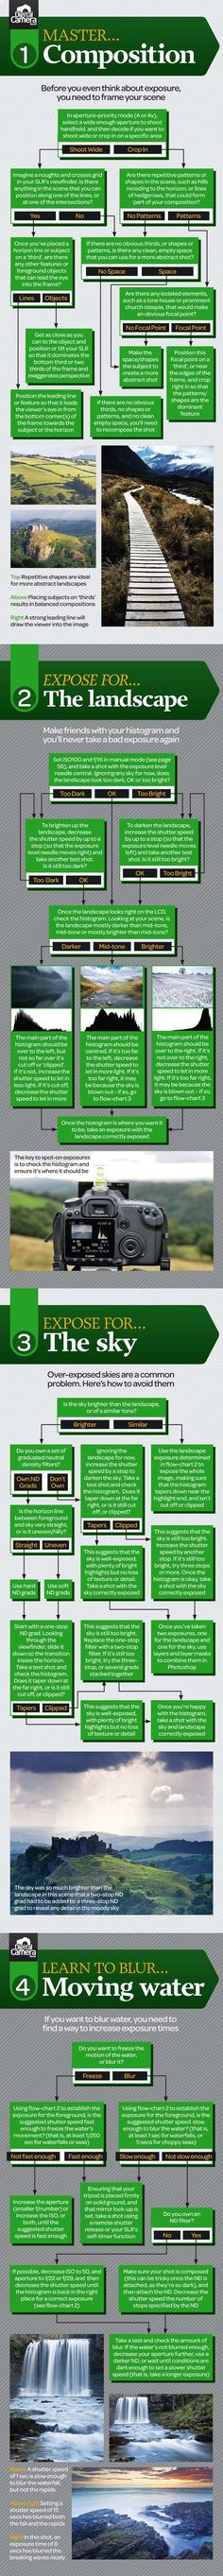 Outdoor/Landscape photography cheat sheet.